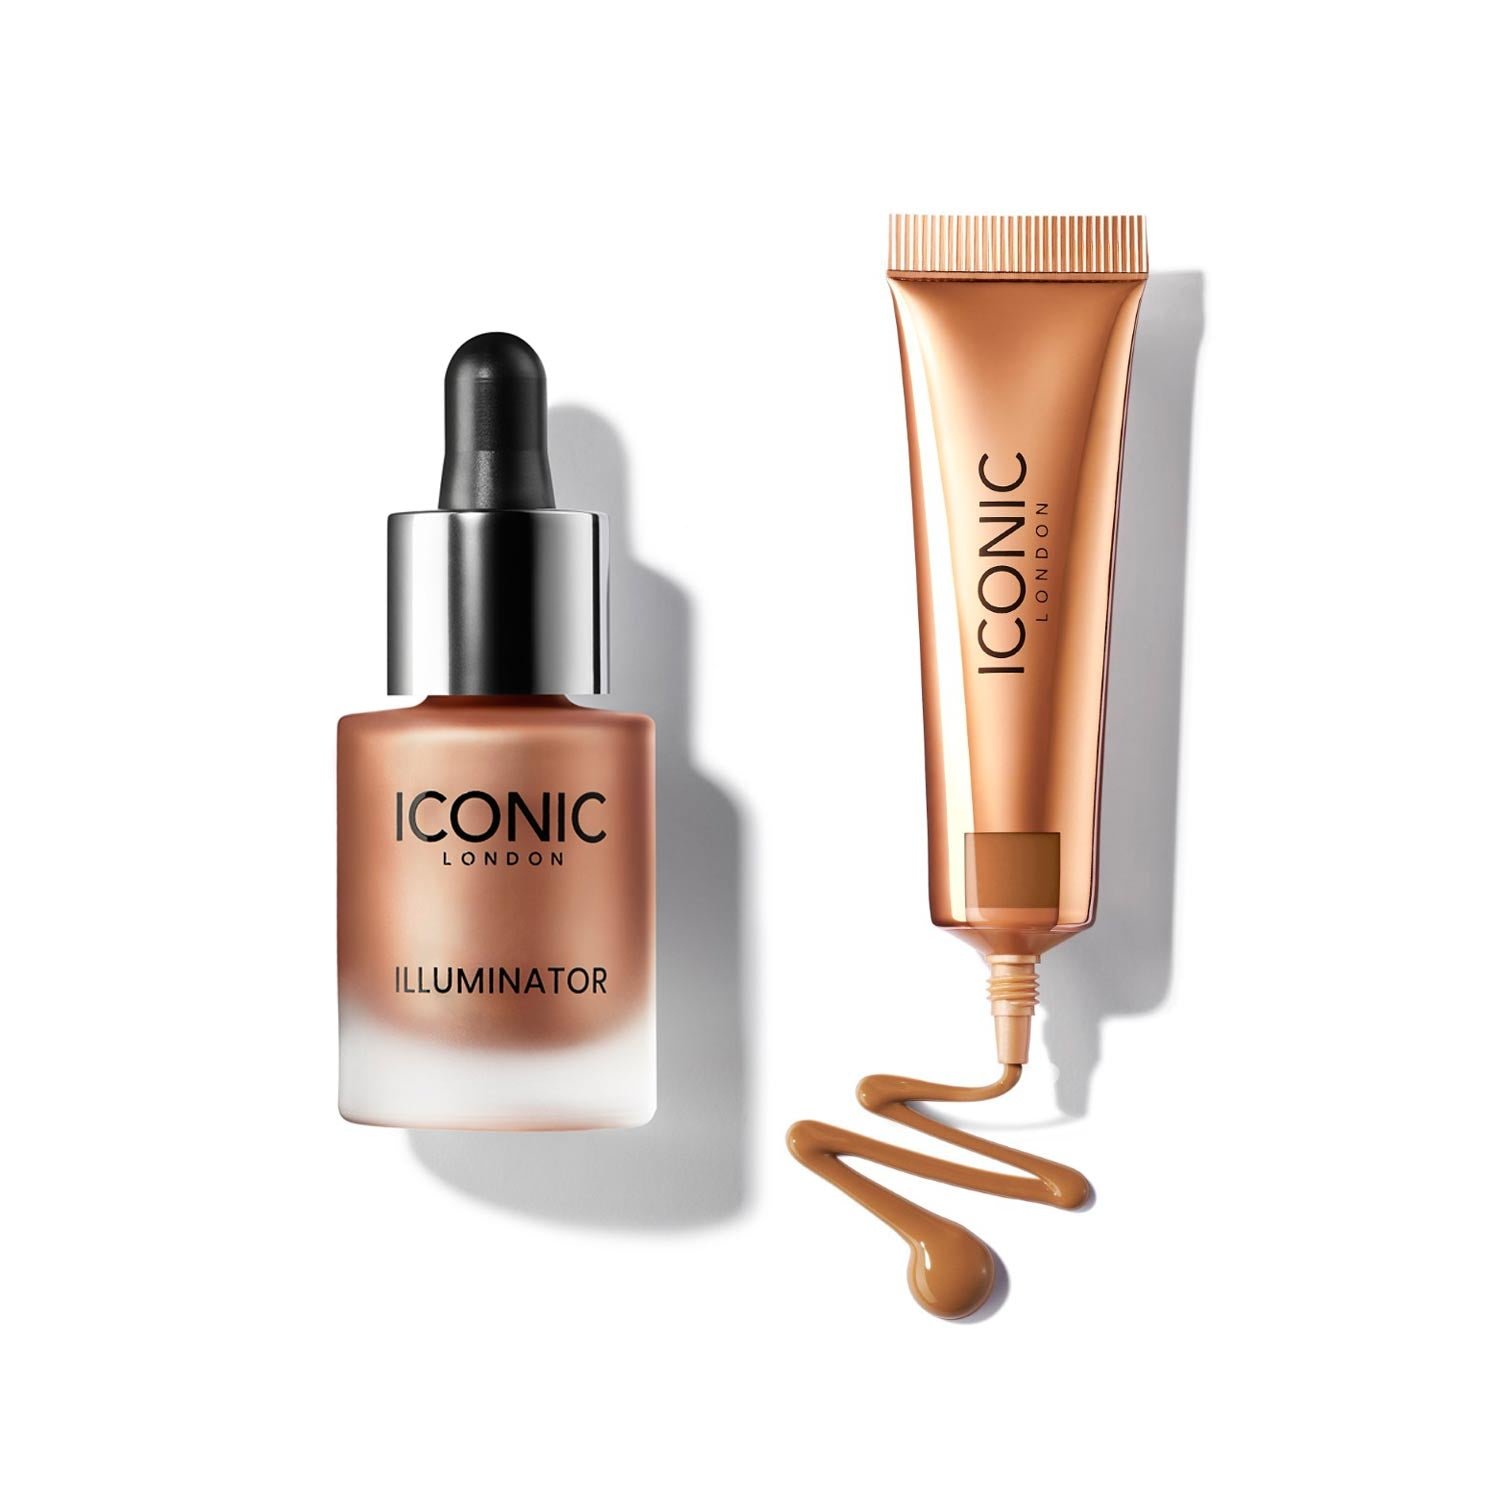 Sheer Bronze & Illuminator